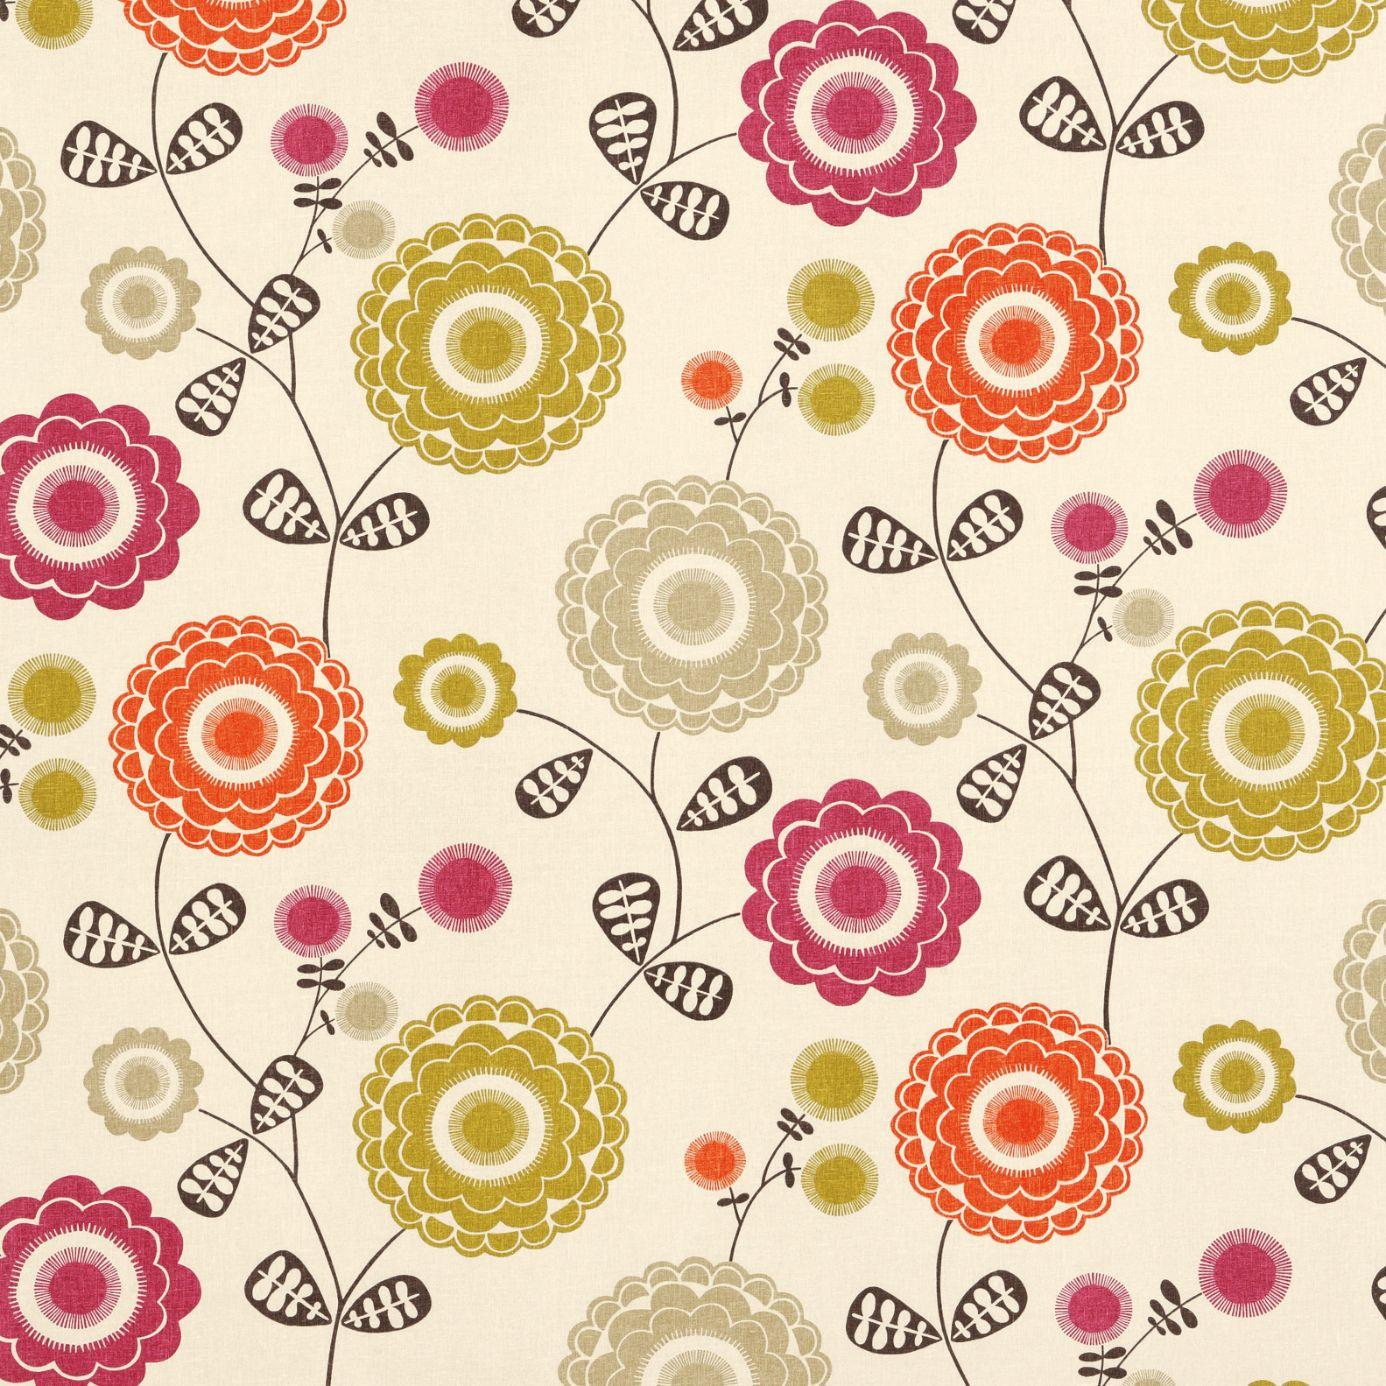 Modern floral fabric patterns for Modern fabrics textiles